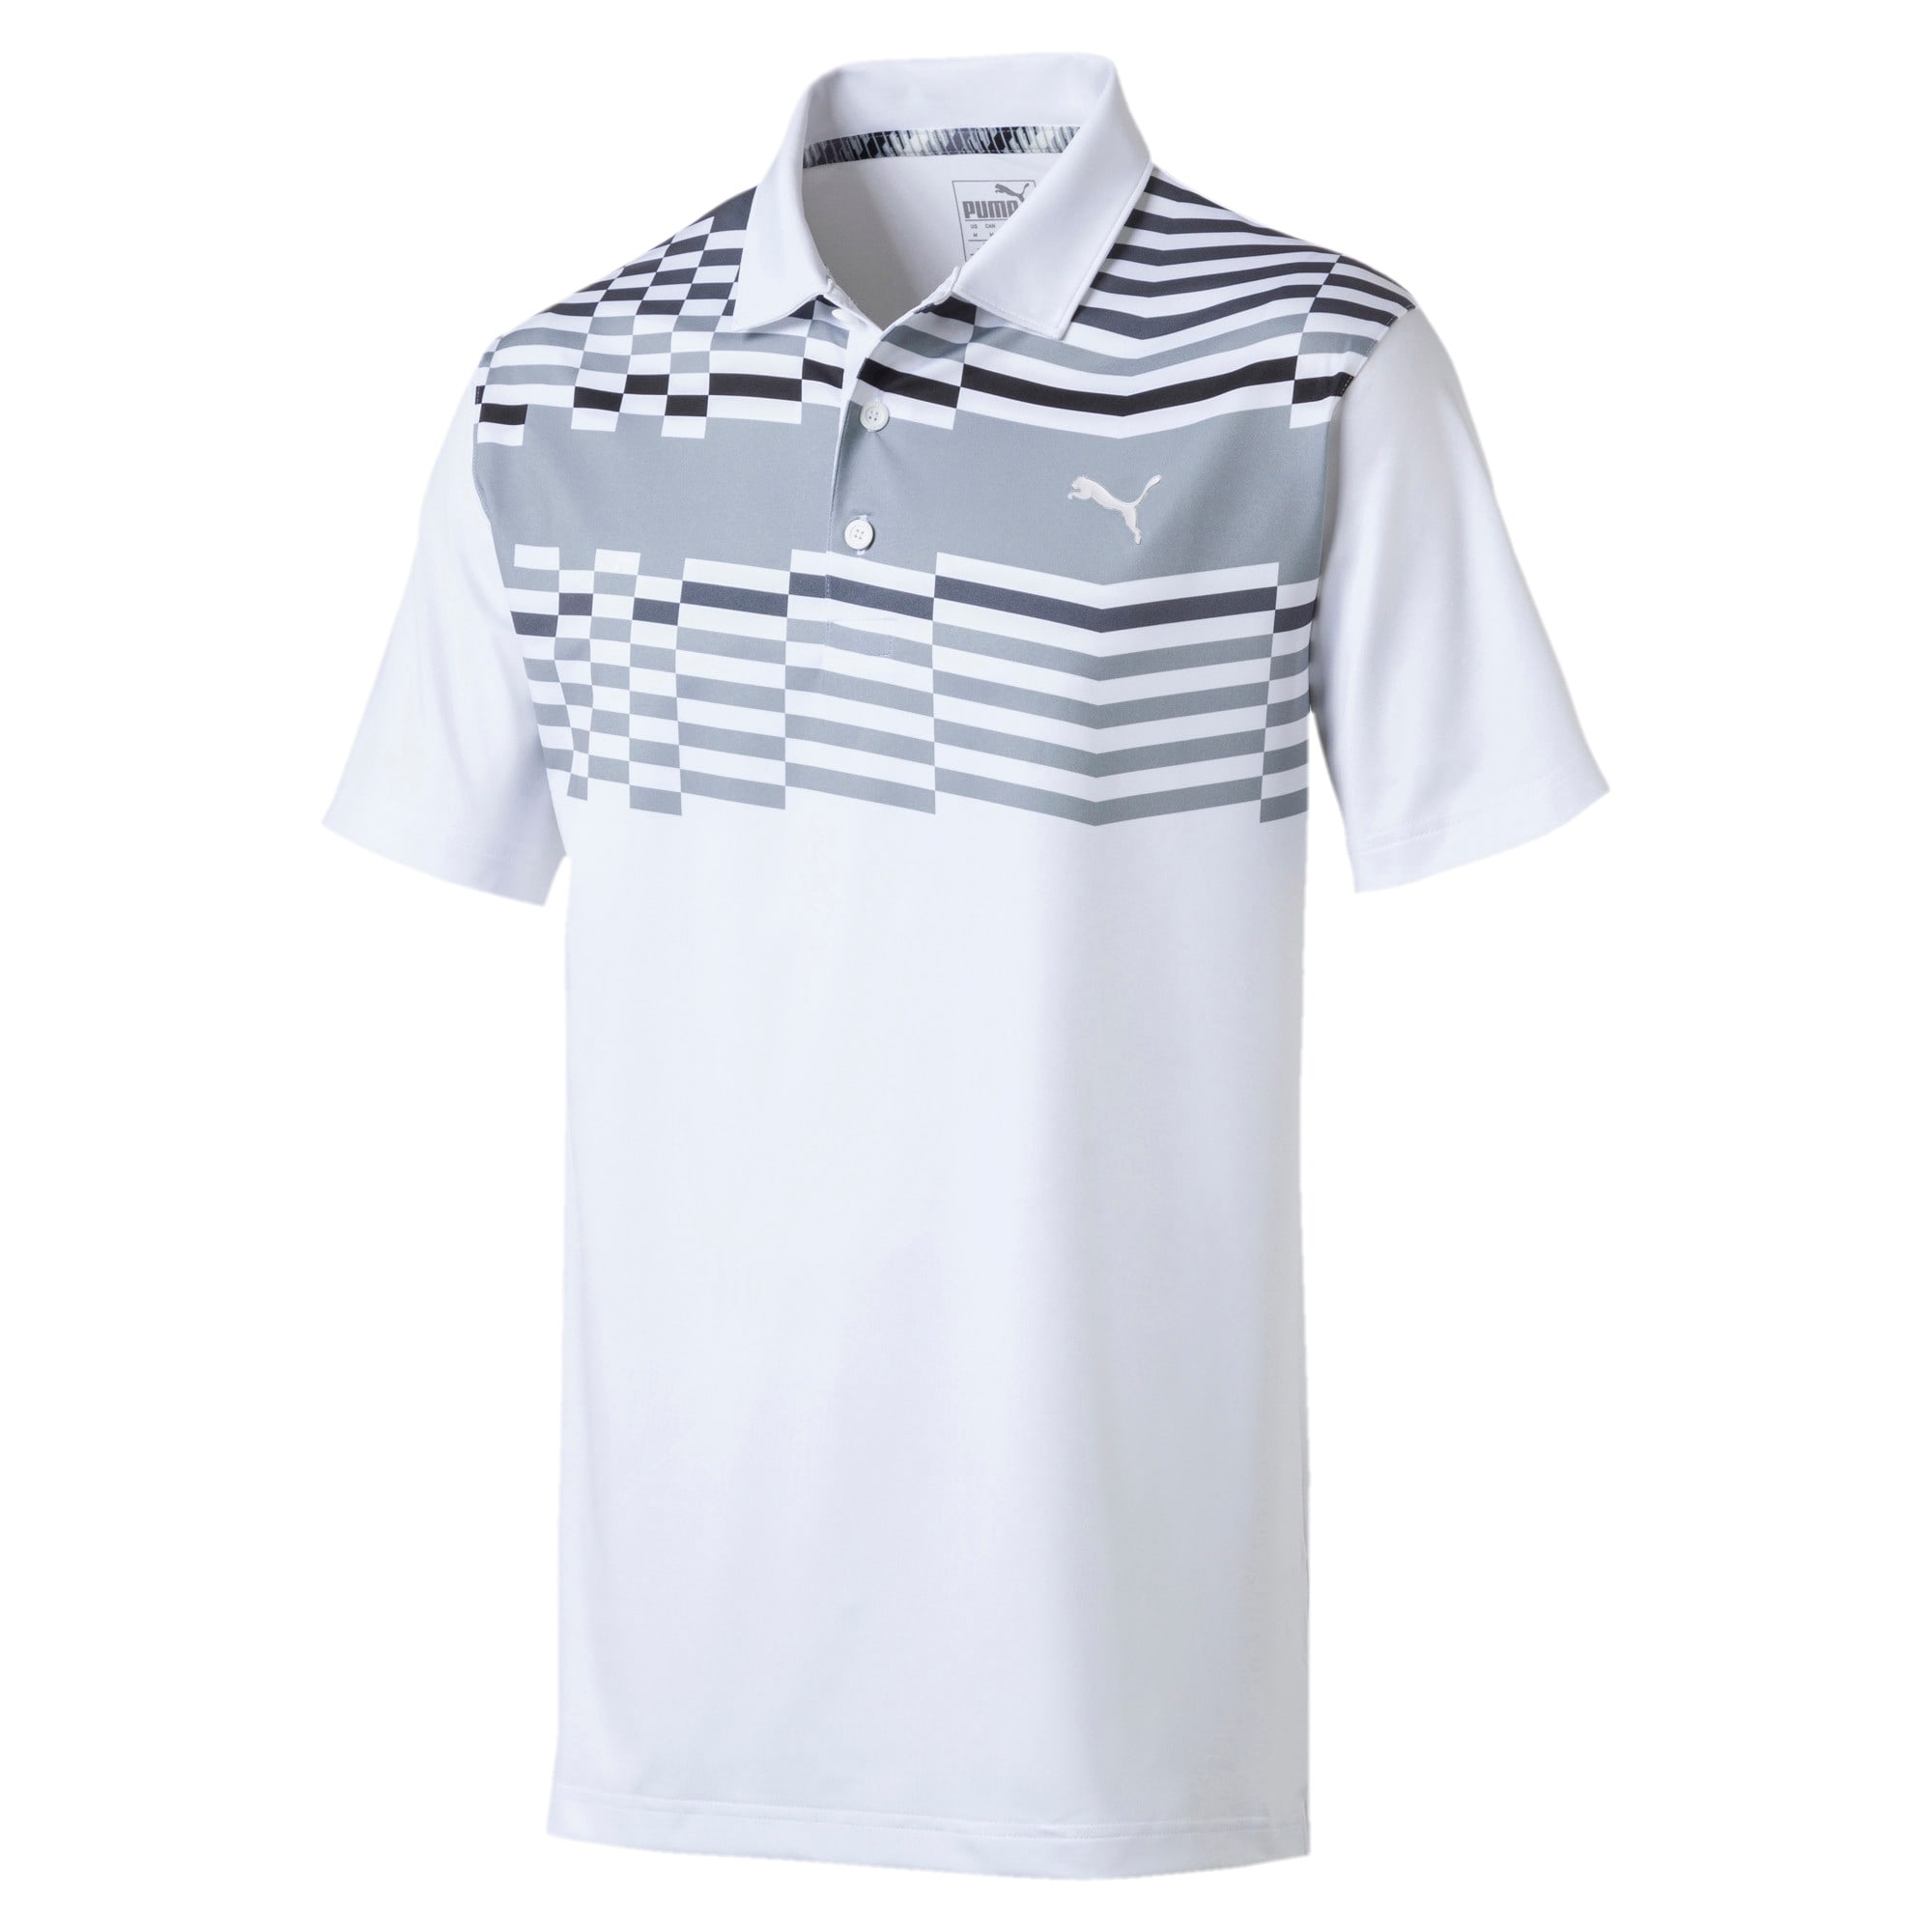 Thumbnail 4 of Road Map Herren Golf Polo, Bright White-Puma Black, medium